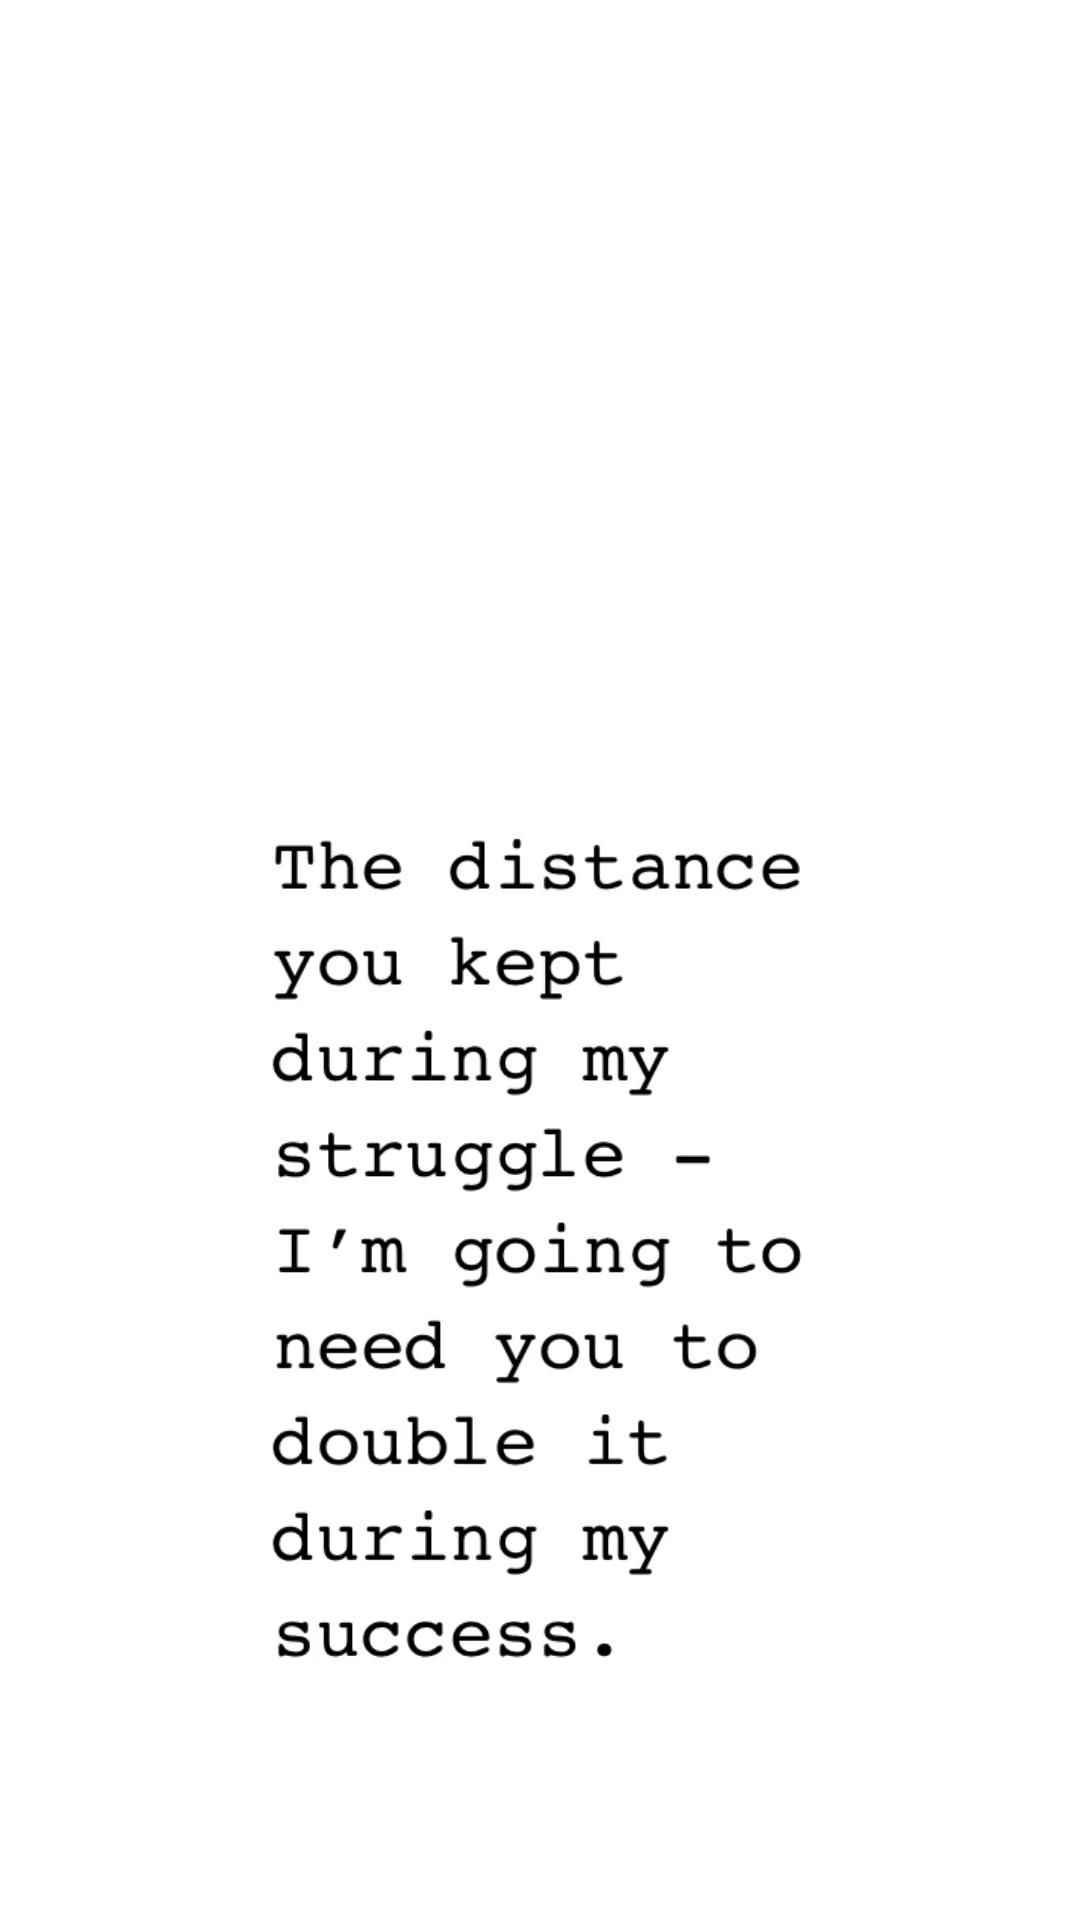 Please keep your distance.